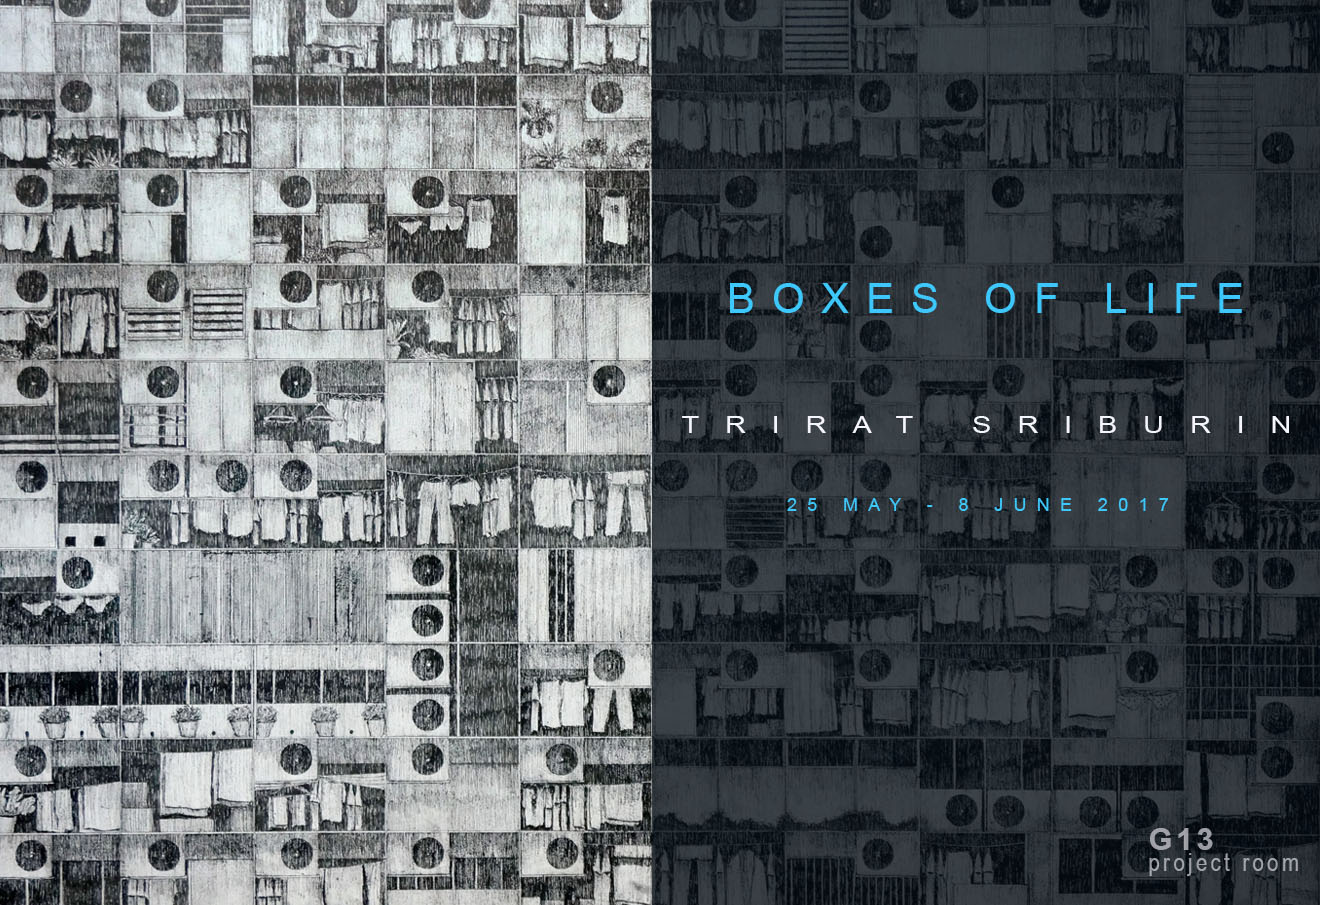 G13 Project Room : Boxes of Life by Trirat Sriburin